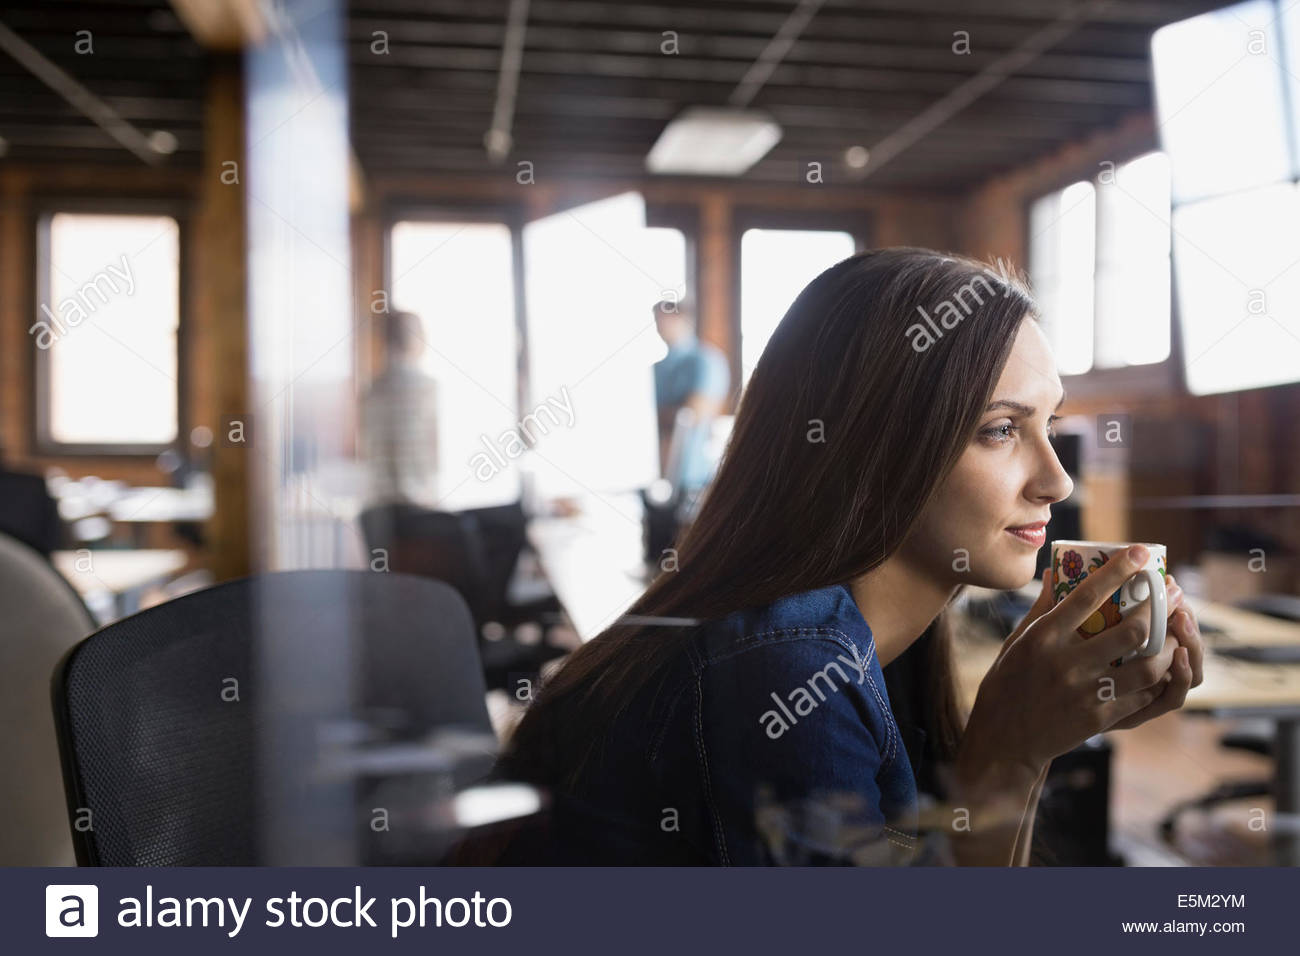 Pensive businesswoman drinking coffee in office - Stock Image